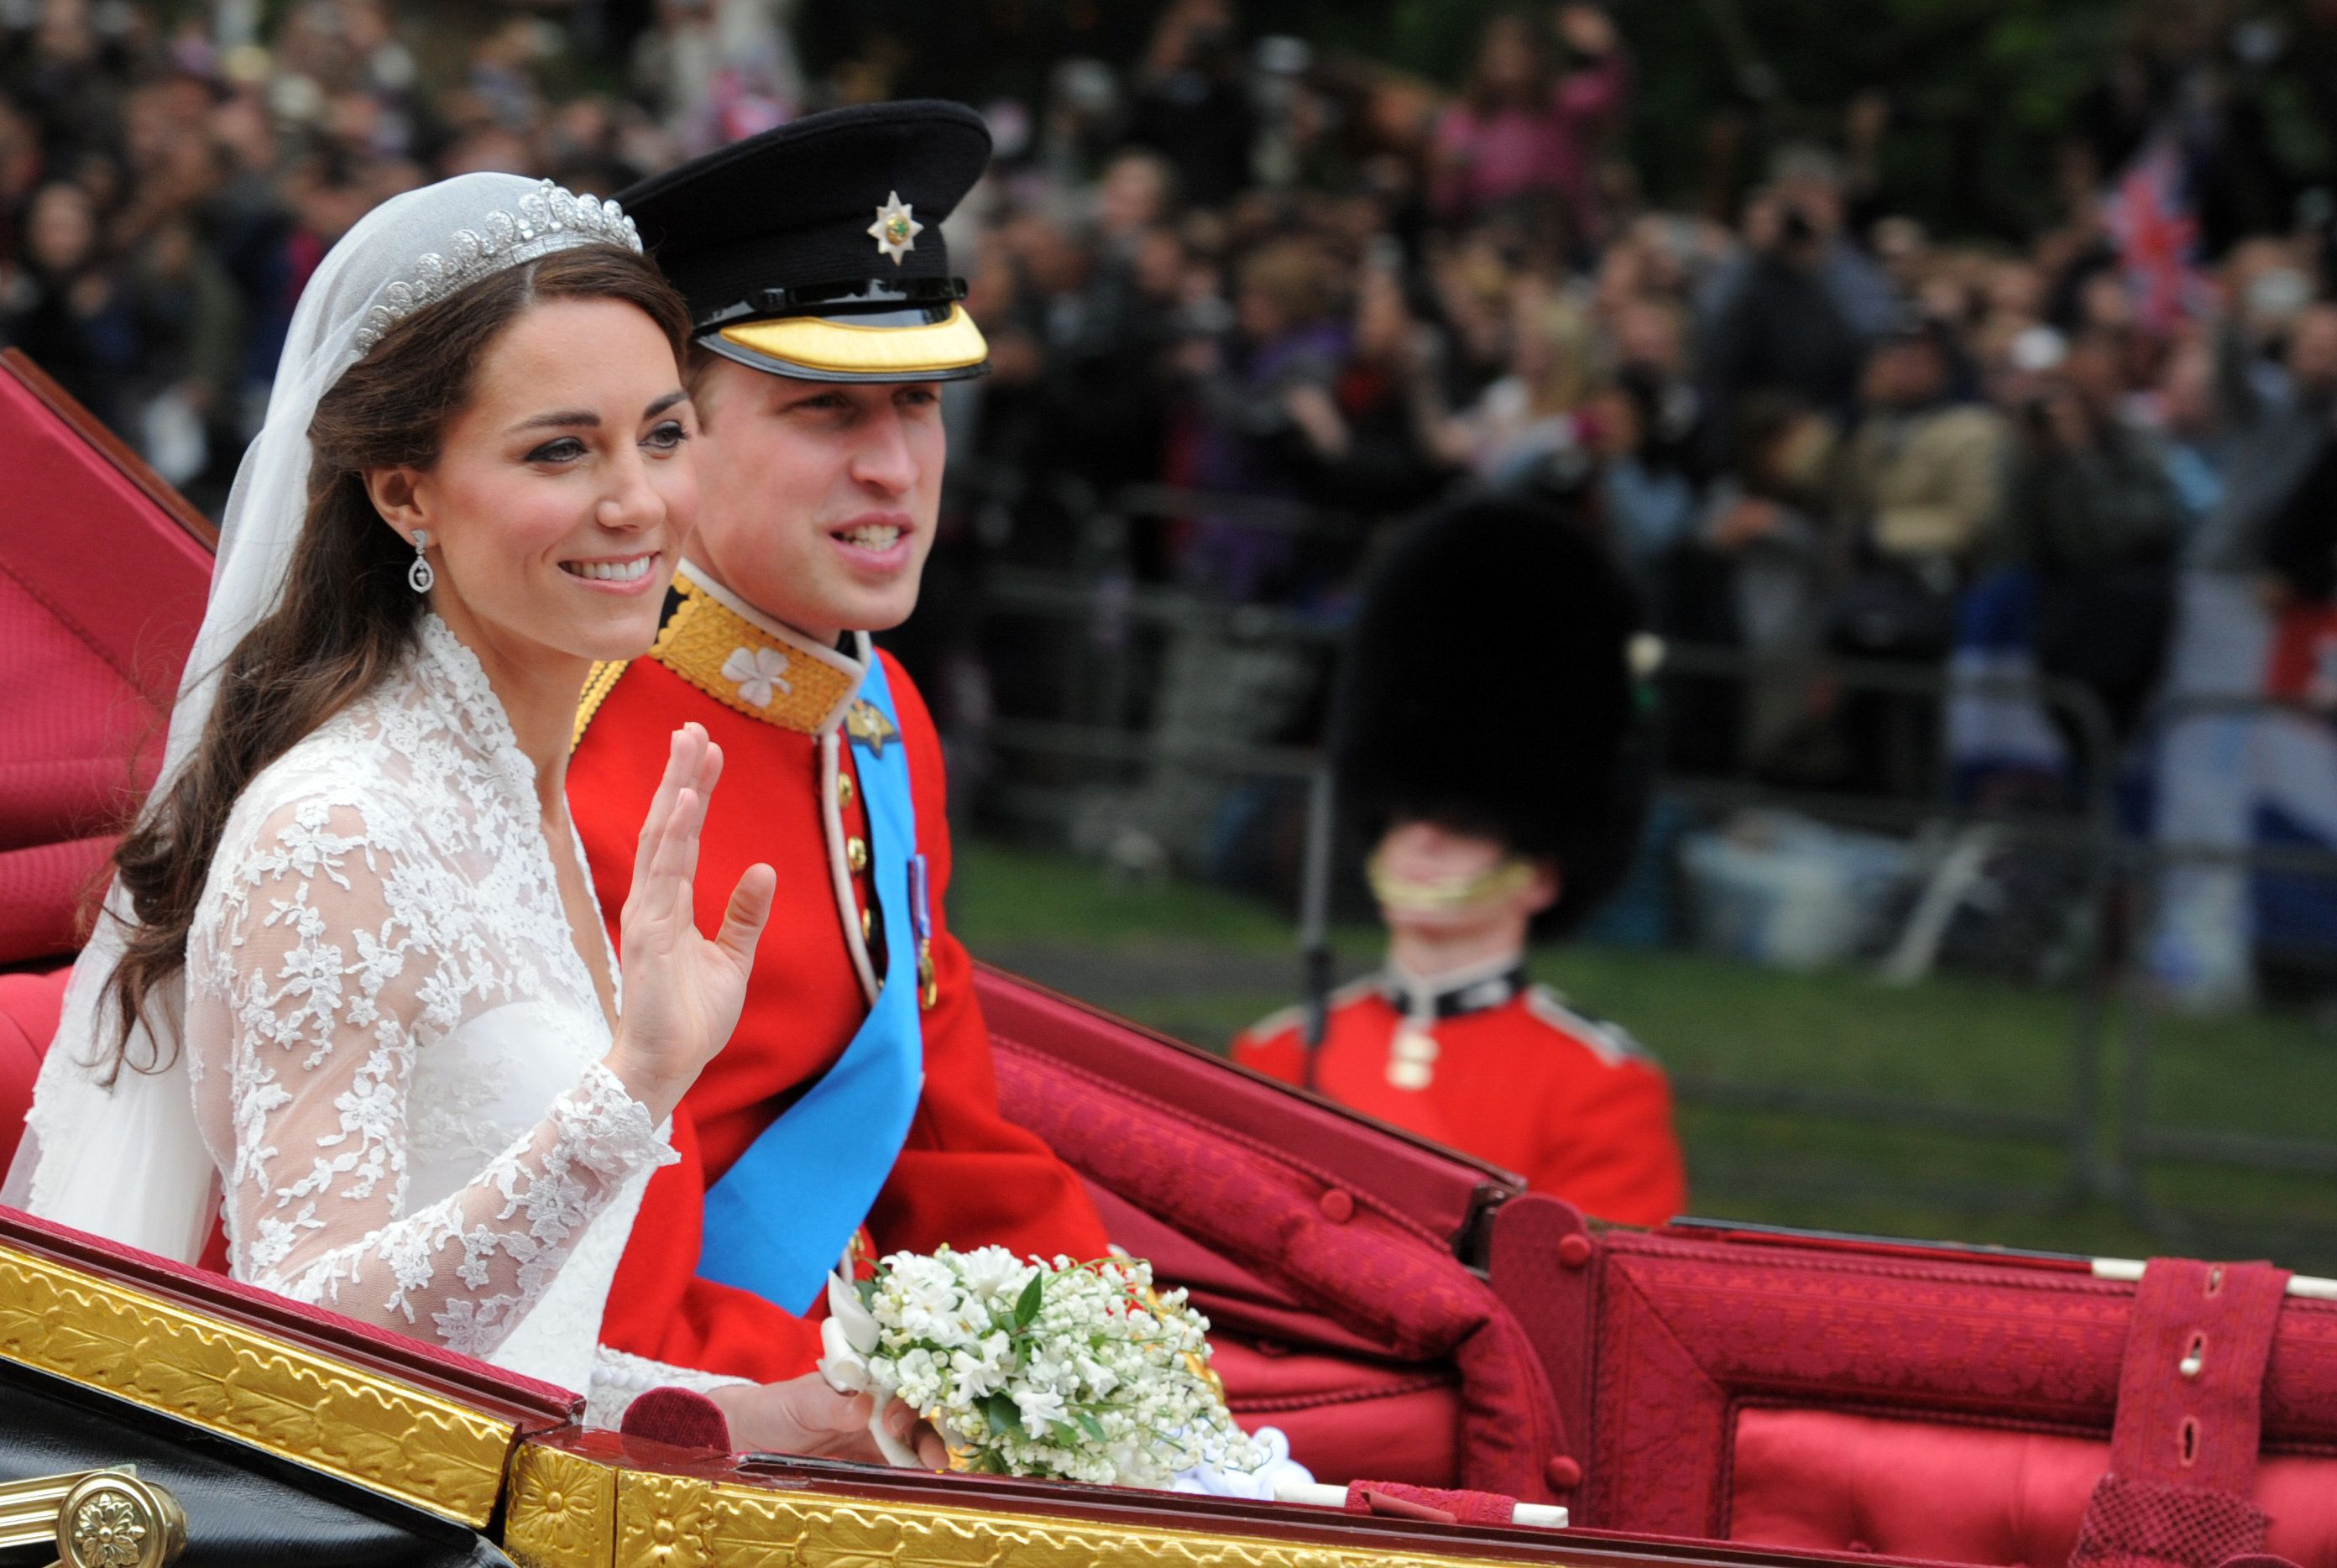 William And Kate's Wedding Cost Police £6 Million In Security